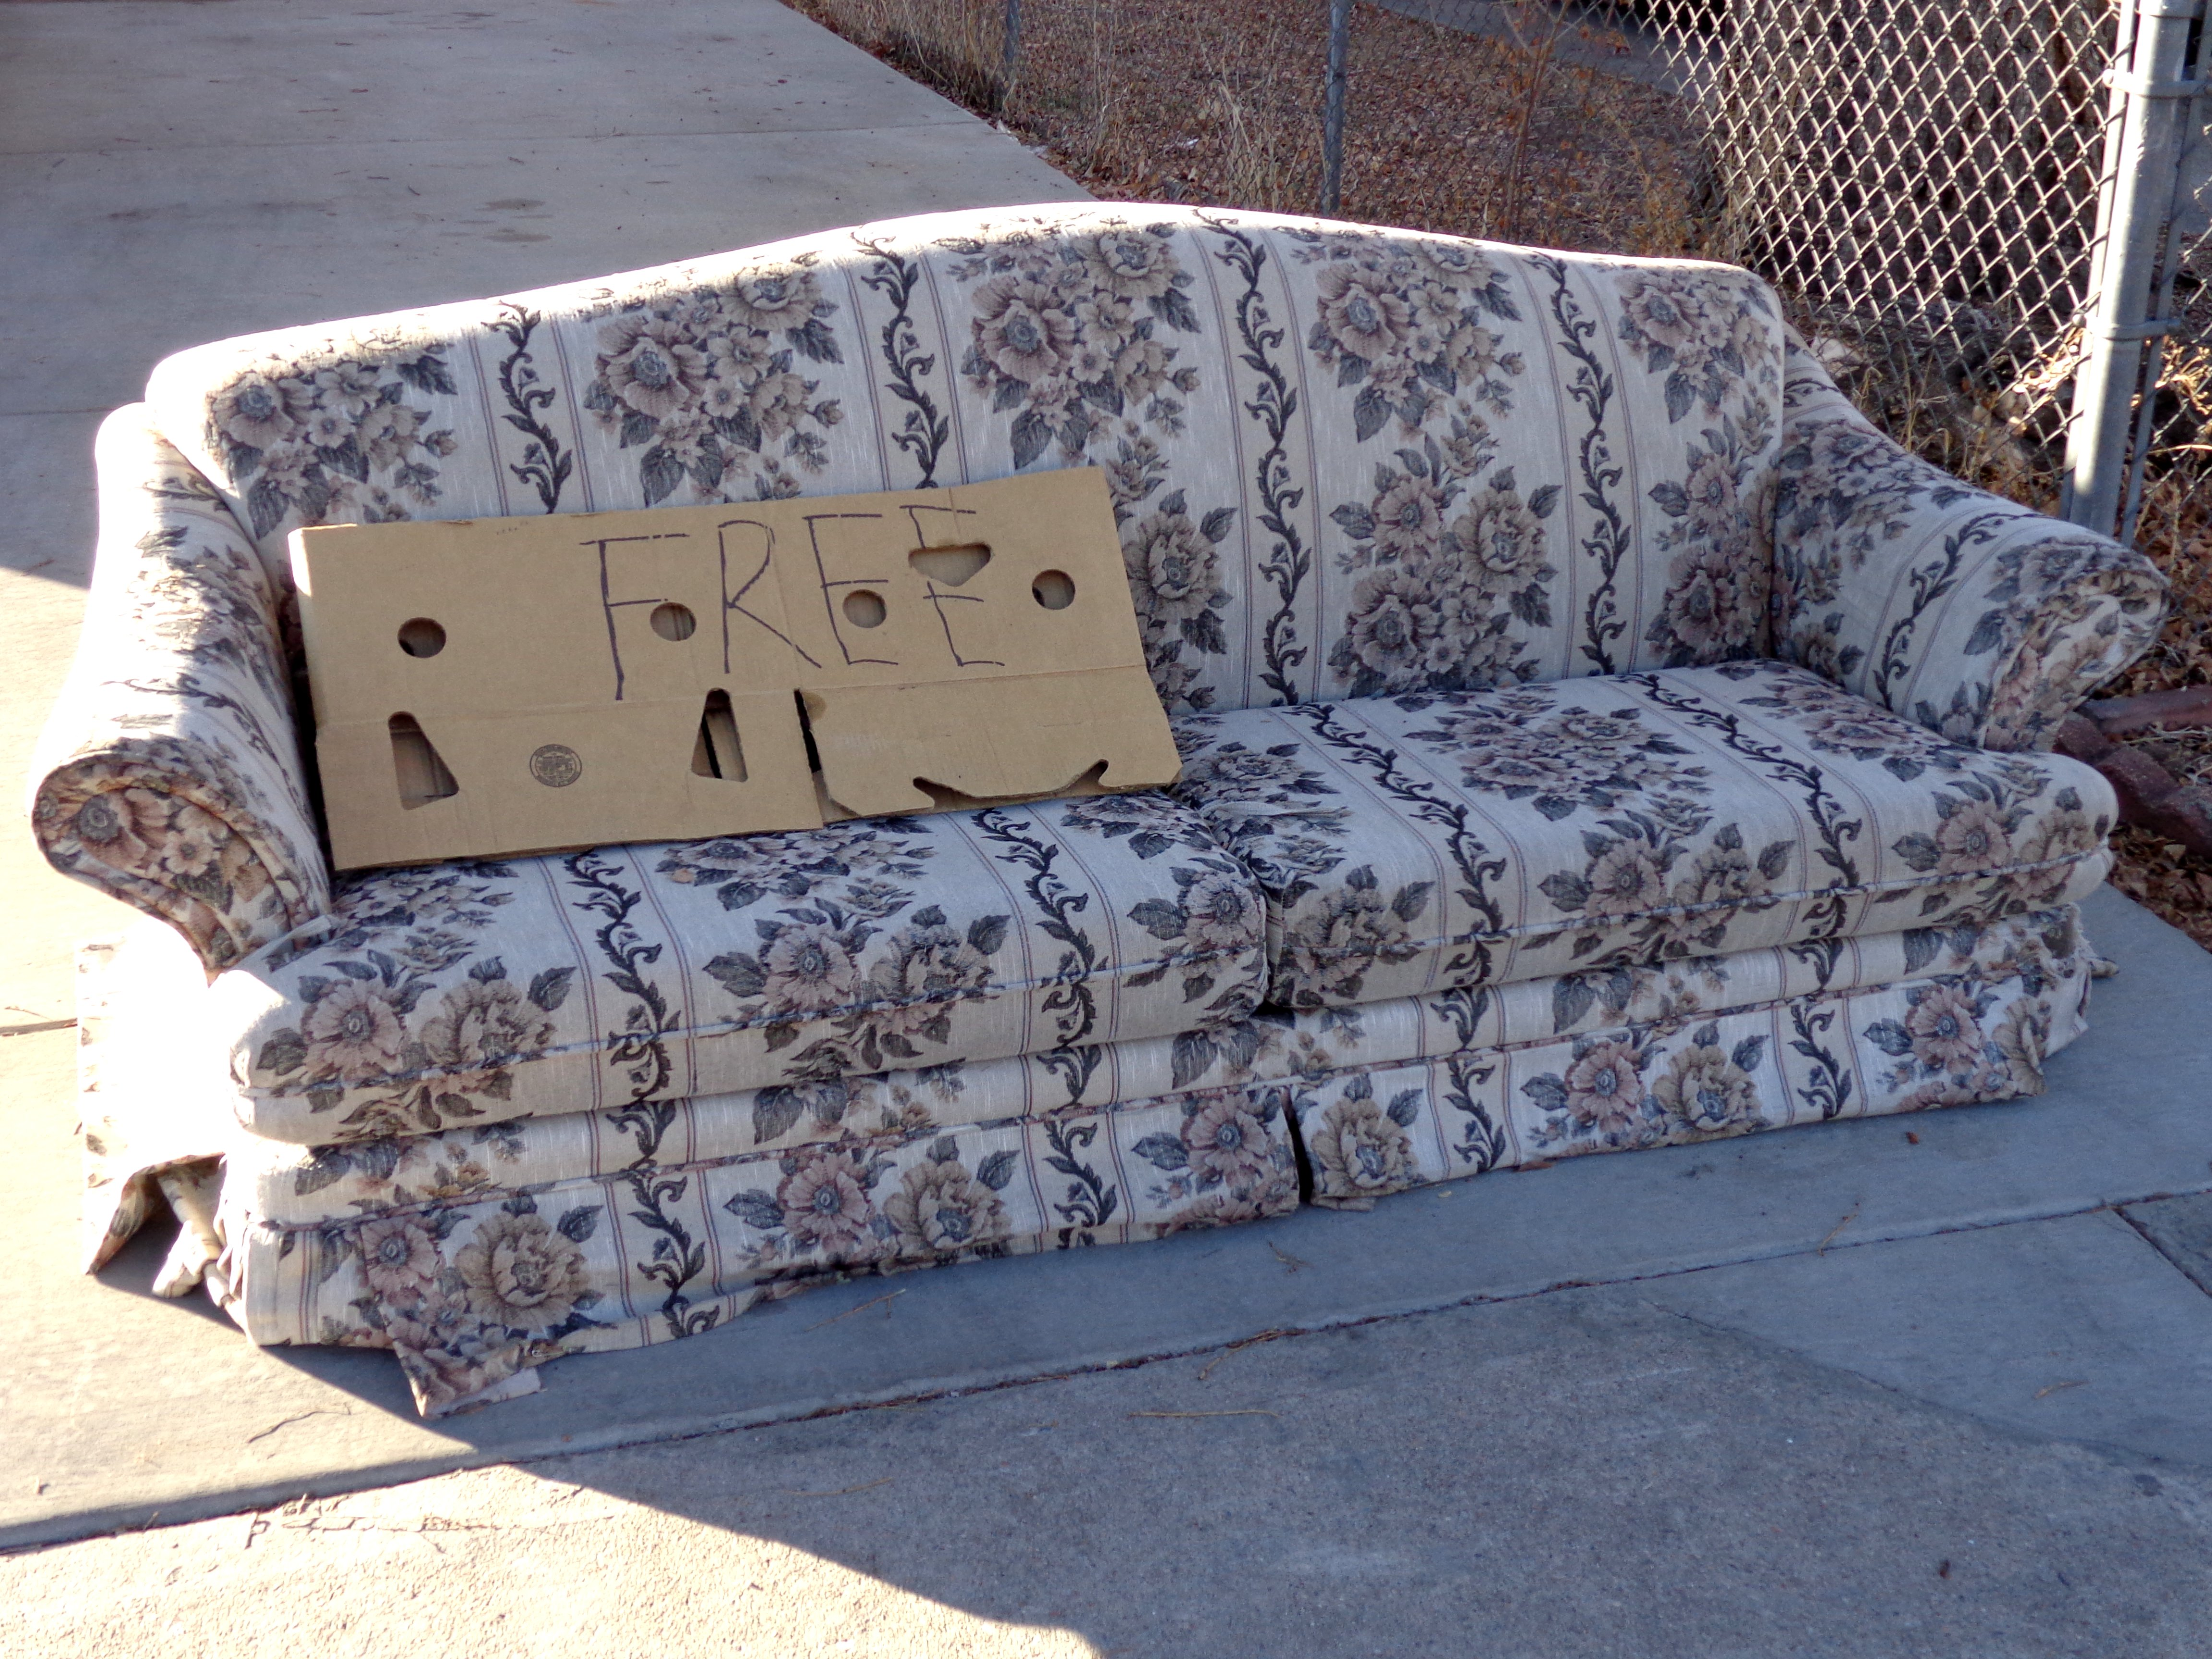 The making of the free couch